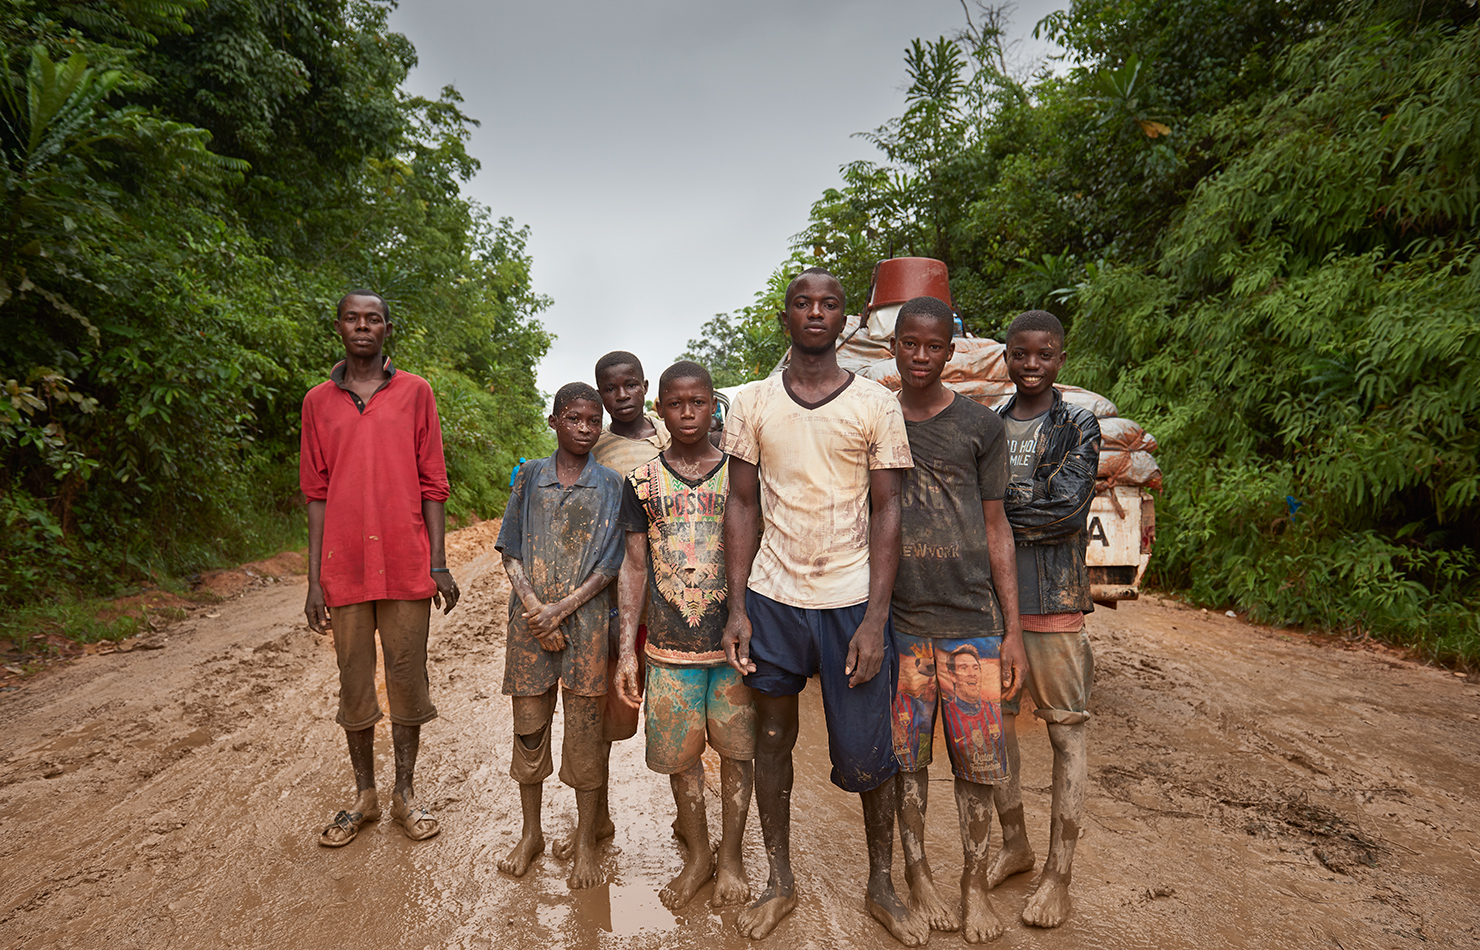 Liberia Africa reportage photography